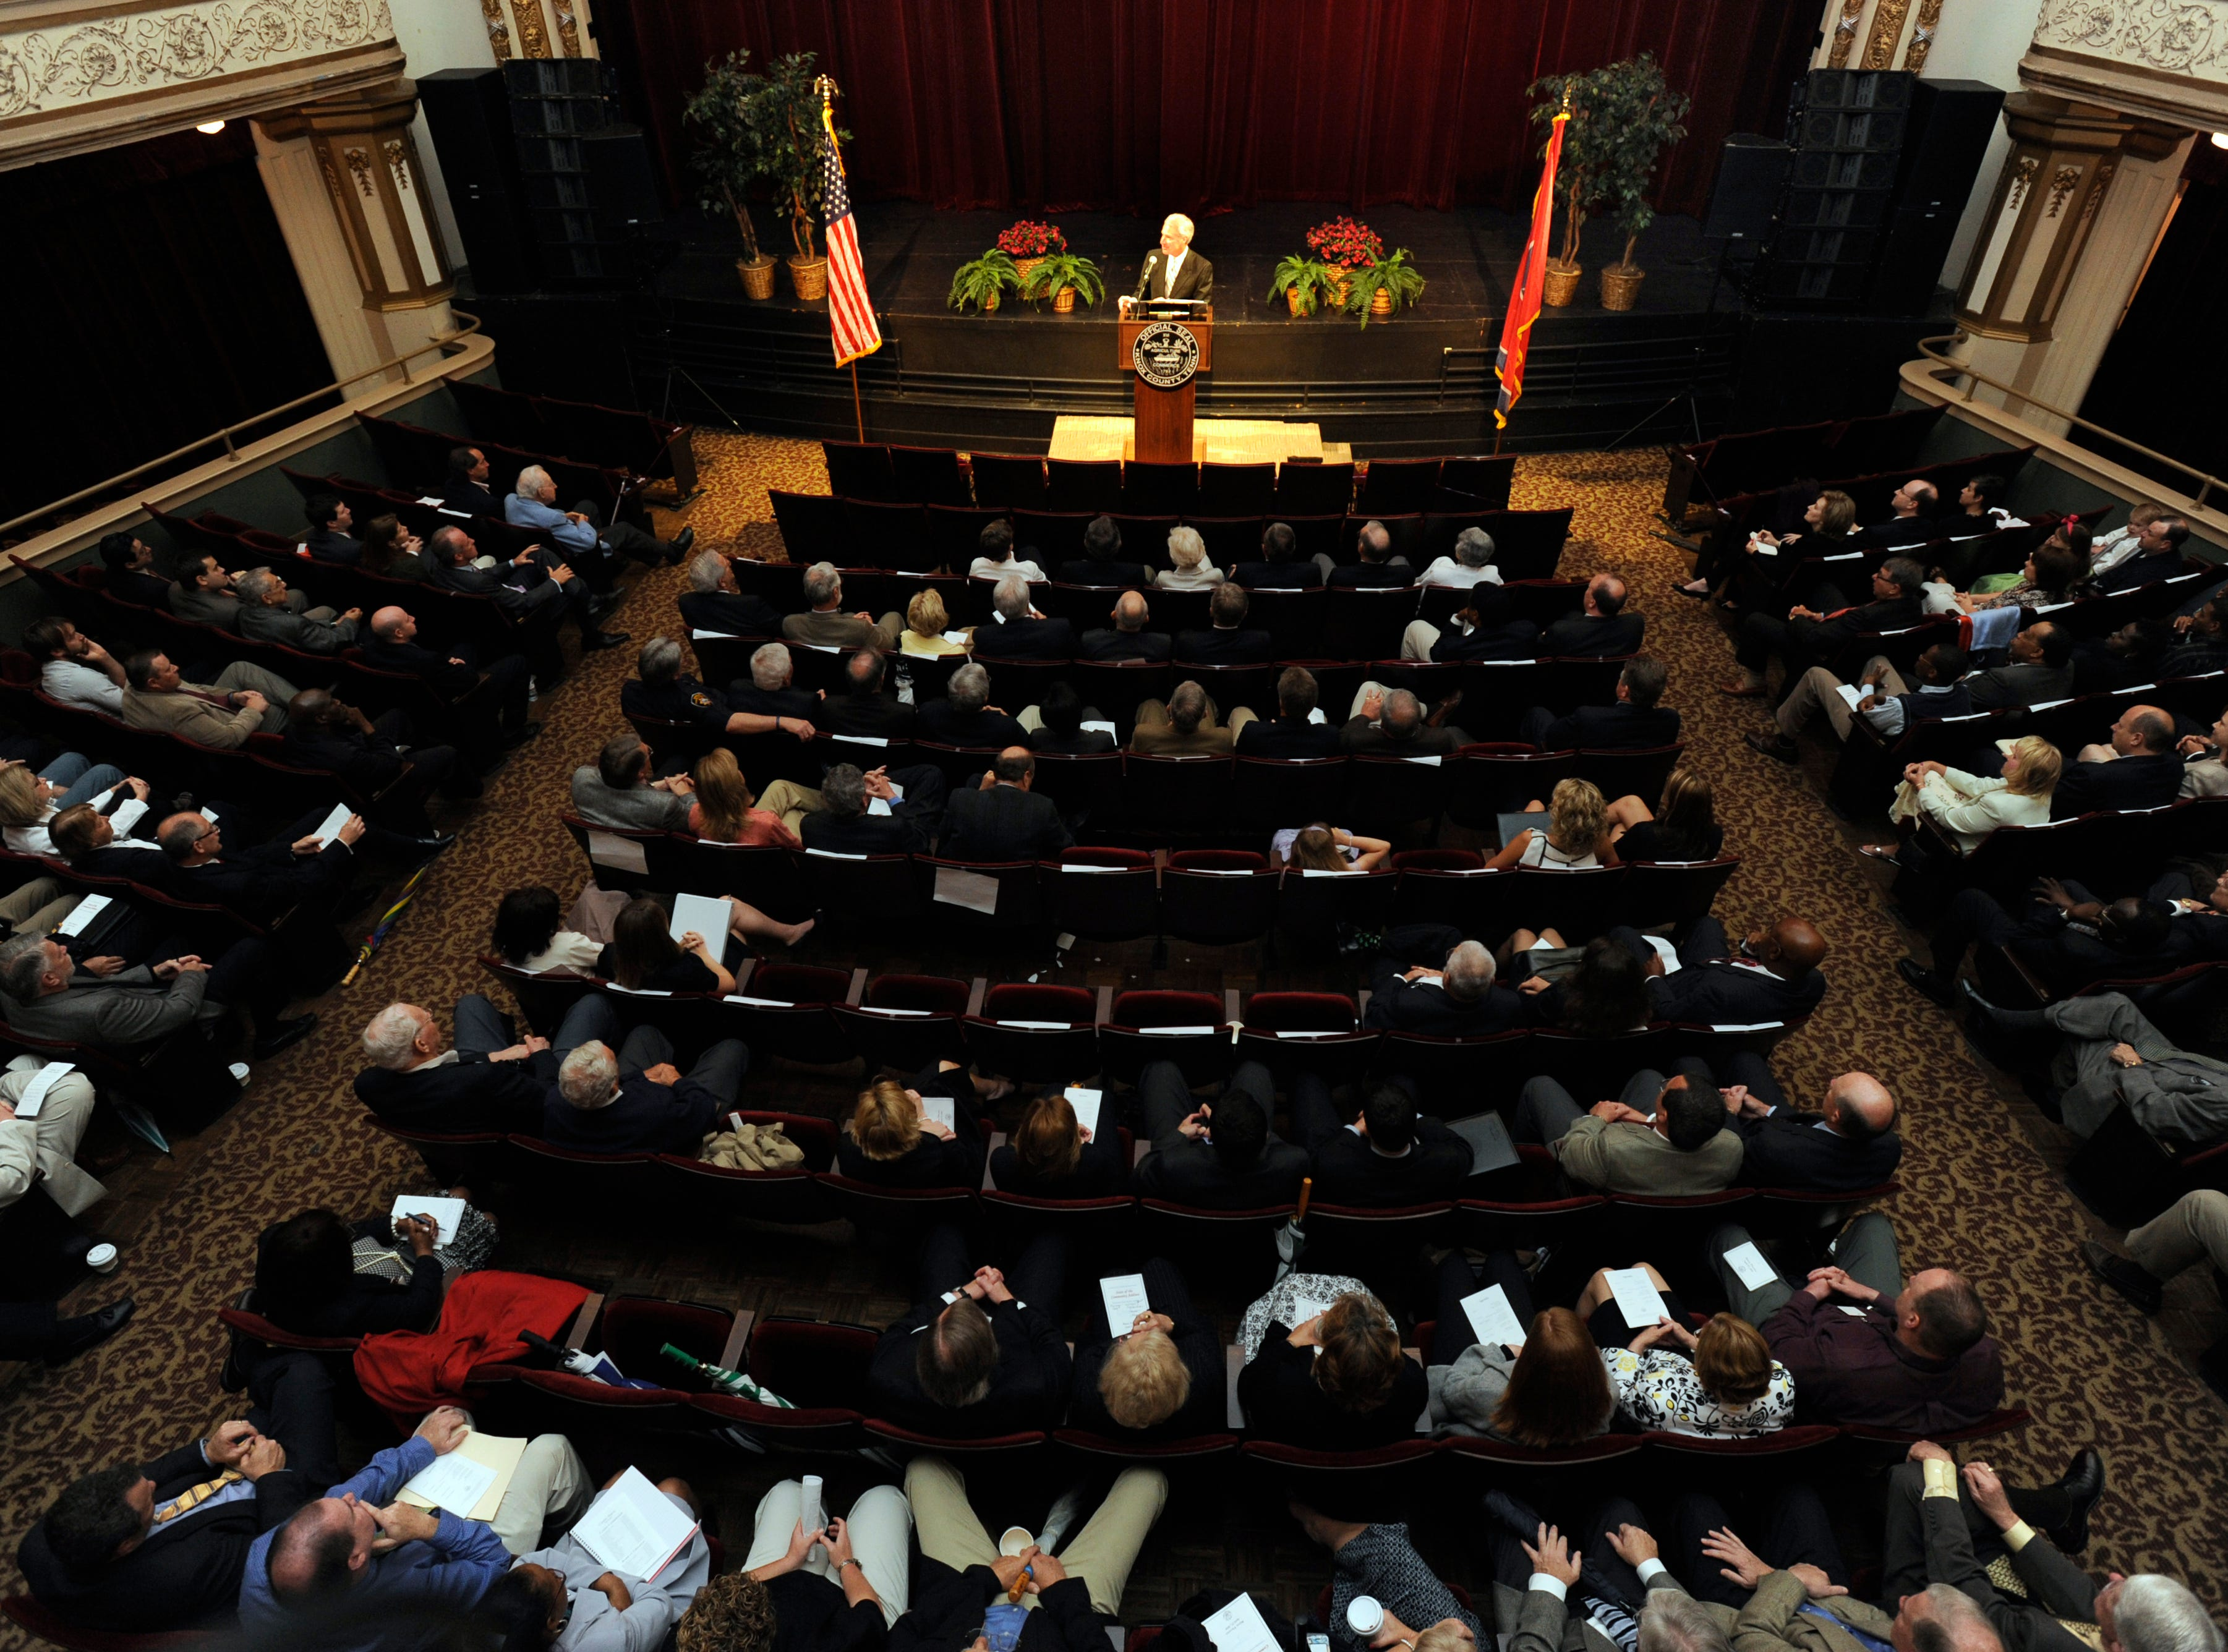 Knox County Mayor Mike Ragsdale presented his budget and his state-of-the-community speech Tuesday, Apr. 27, 2010 at the Bijou Theatre.